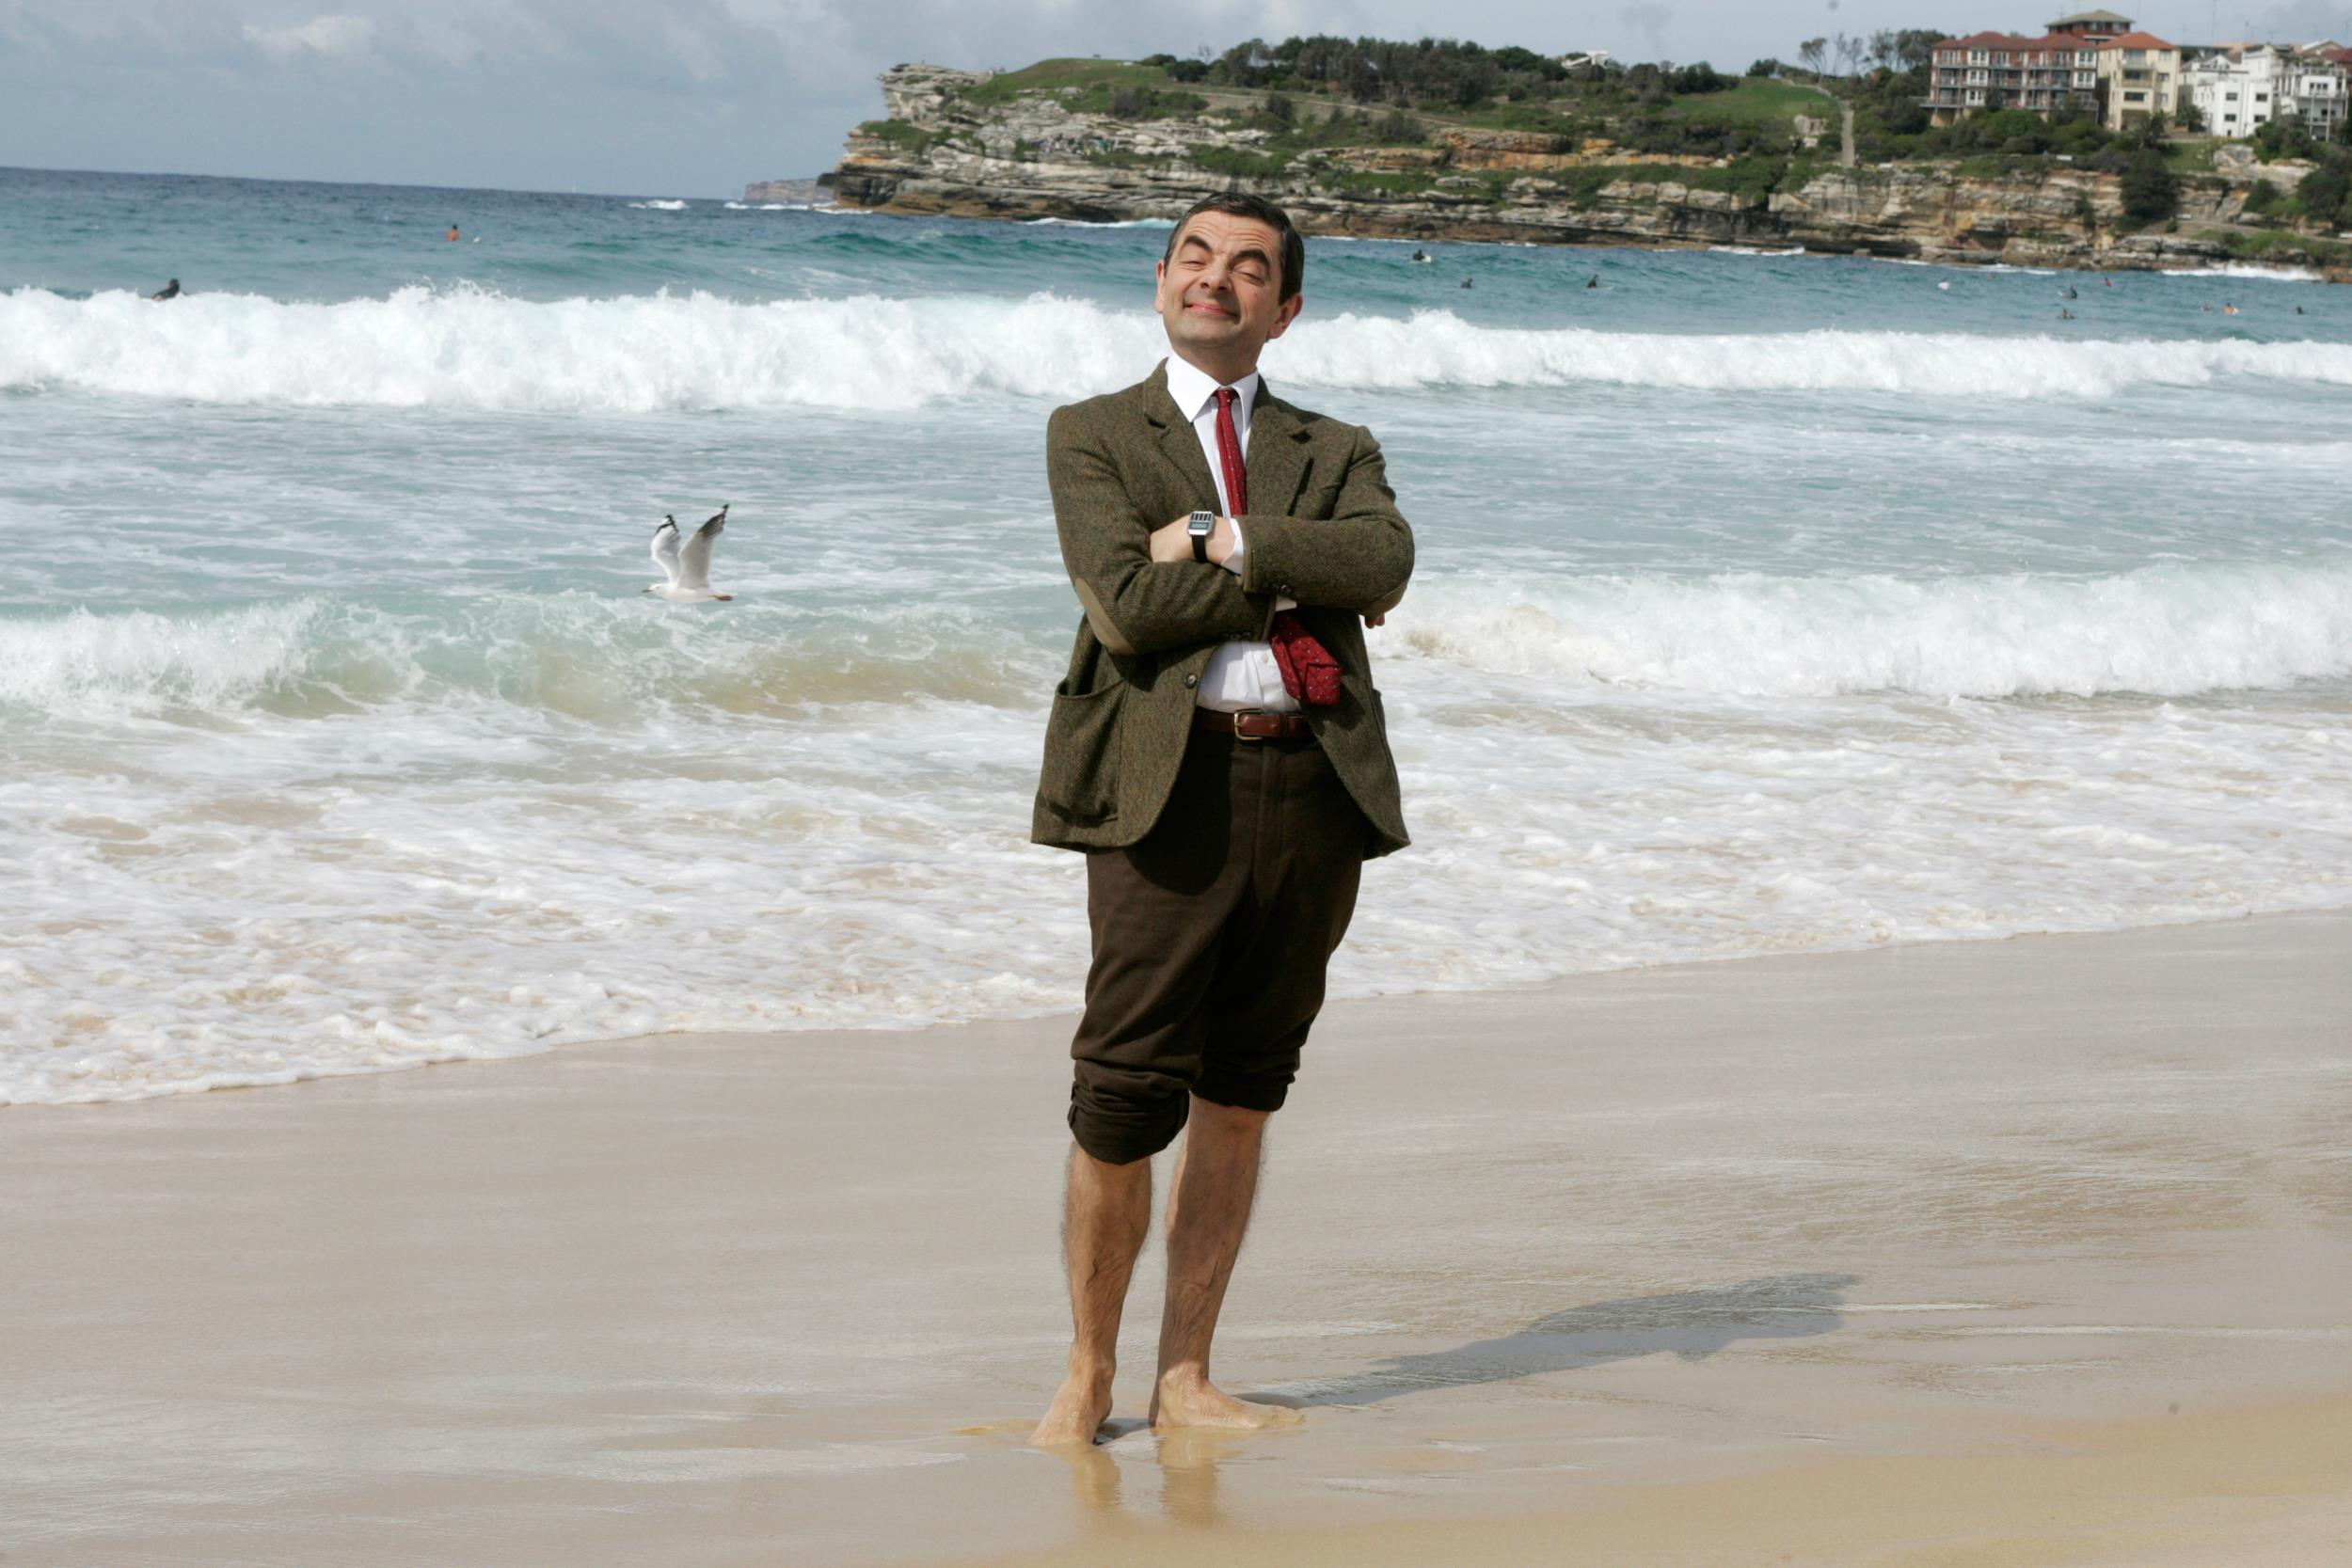 Image: British actor Rowan Atkinson plays his character Mr. Bean on an Australian beach on March 7, 2007.